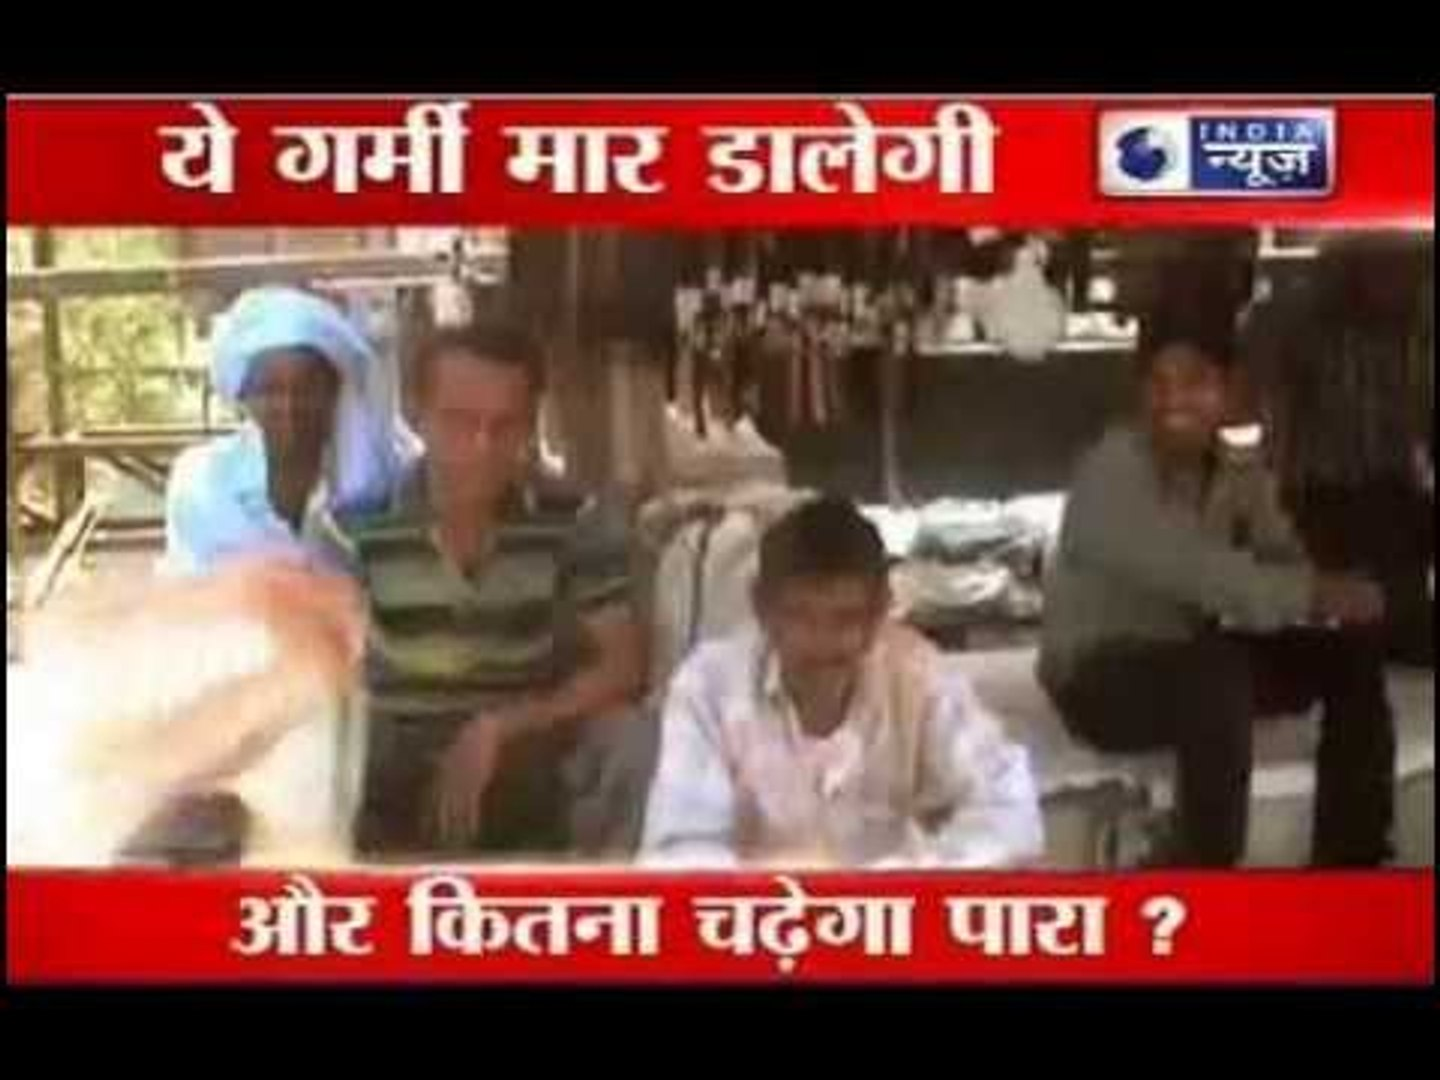 India News : Top News of the hour - 21st May.